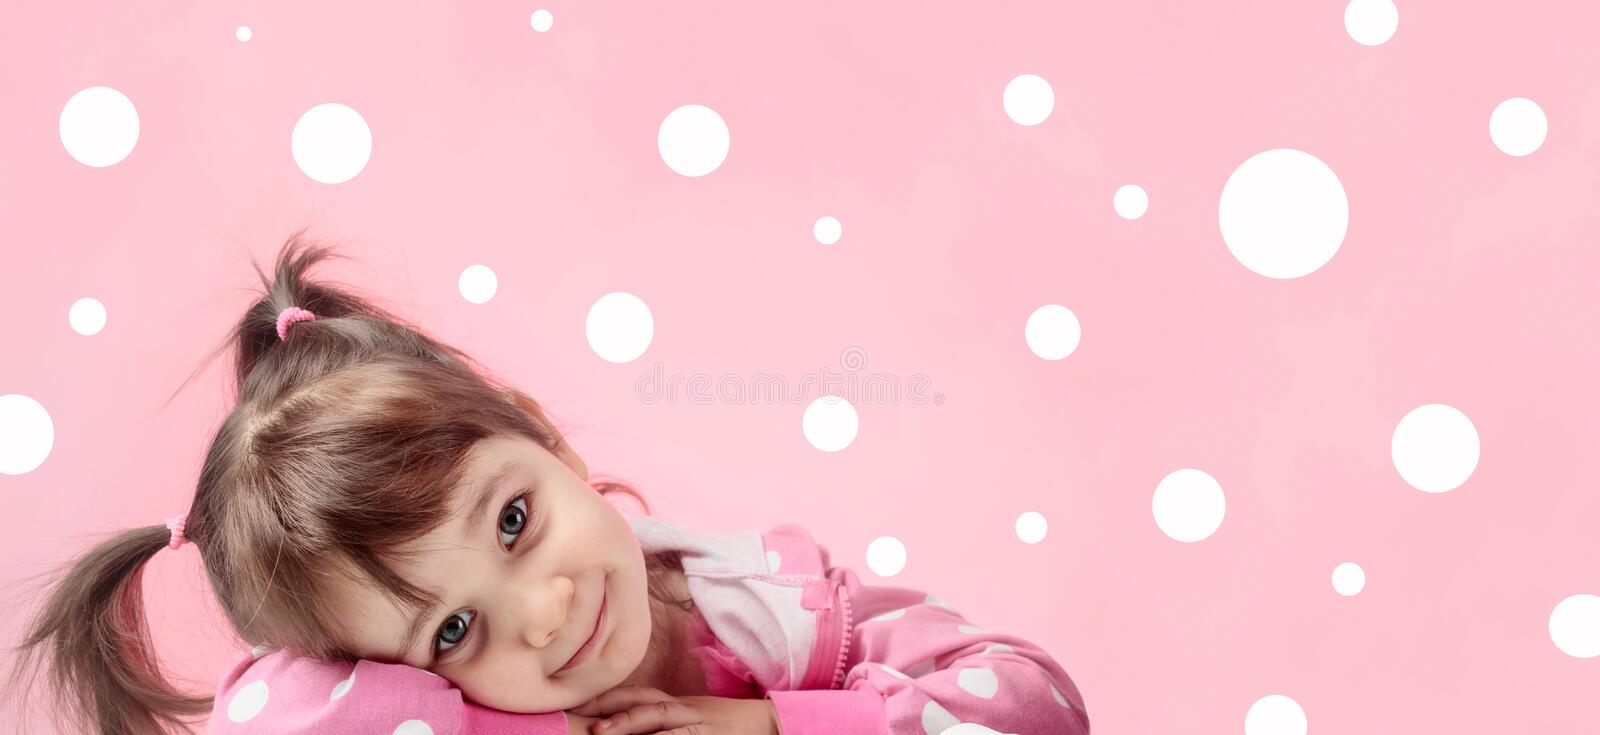 Portrait of a cute little girl with pigtails on pink background. royalty free stock images